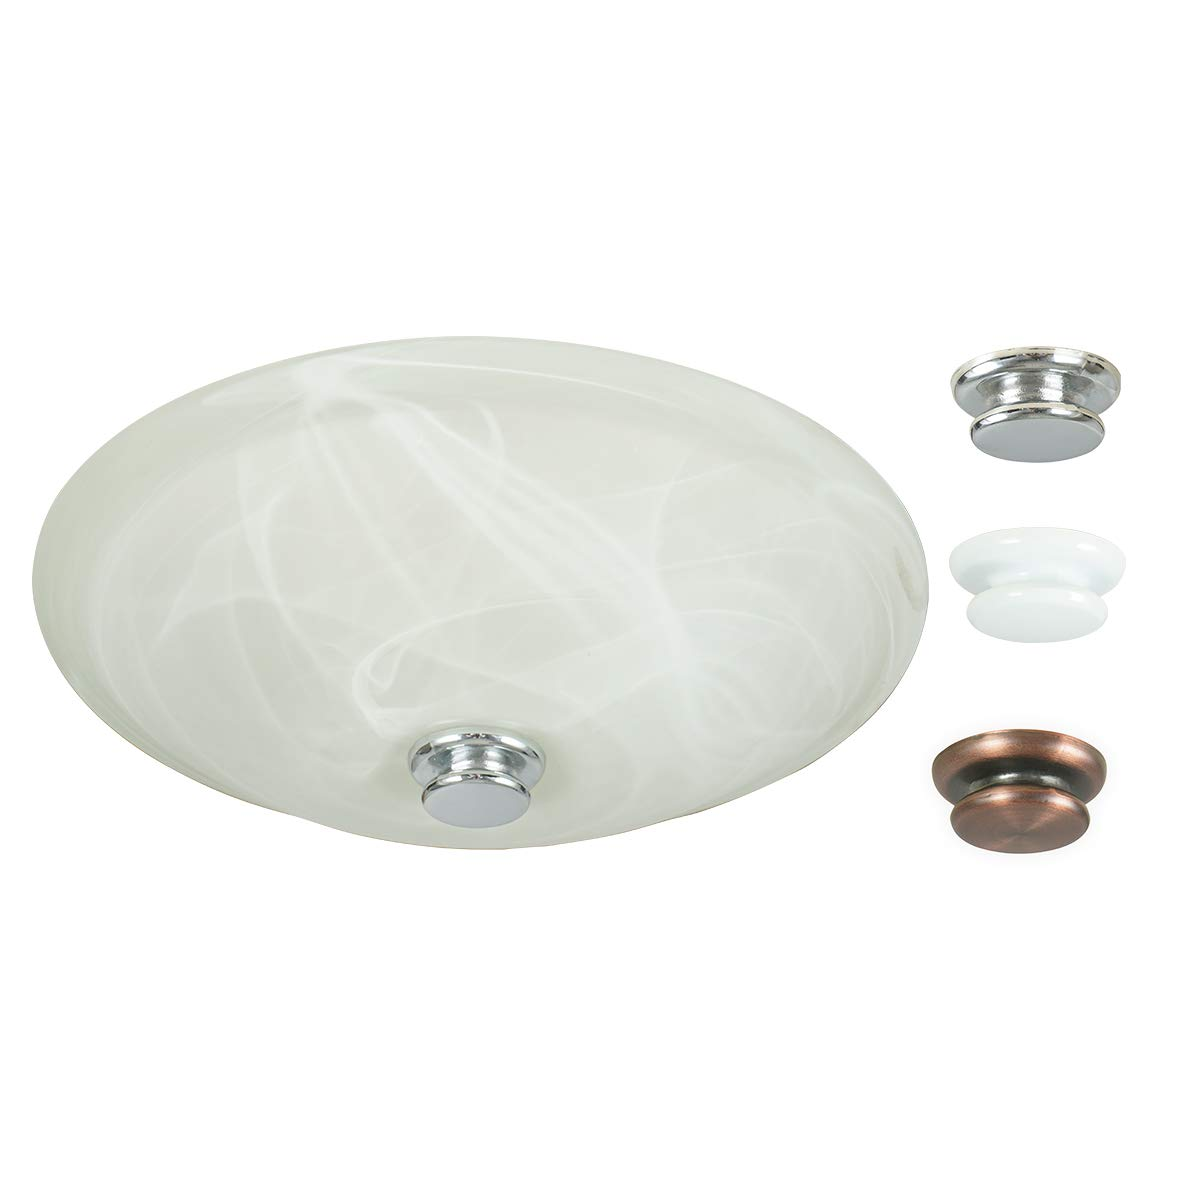 Hunter Home Comfort 80200a Boswell Decorative Bathroom Ventilation Fan with Light and 3 Interchangeable Finials Included (Chrome, White, and Oil-Rubbed Bronze), Various